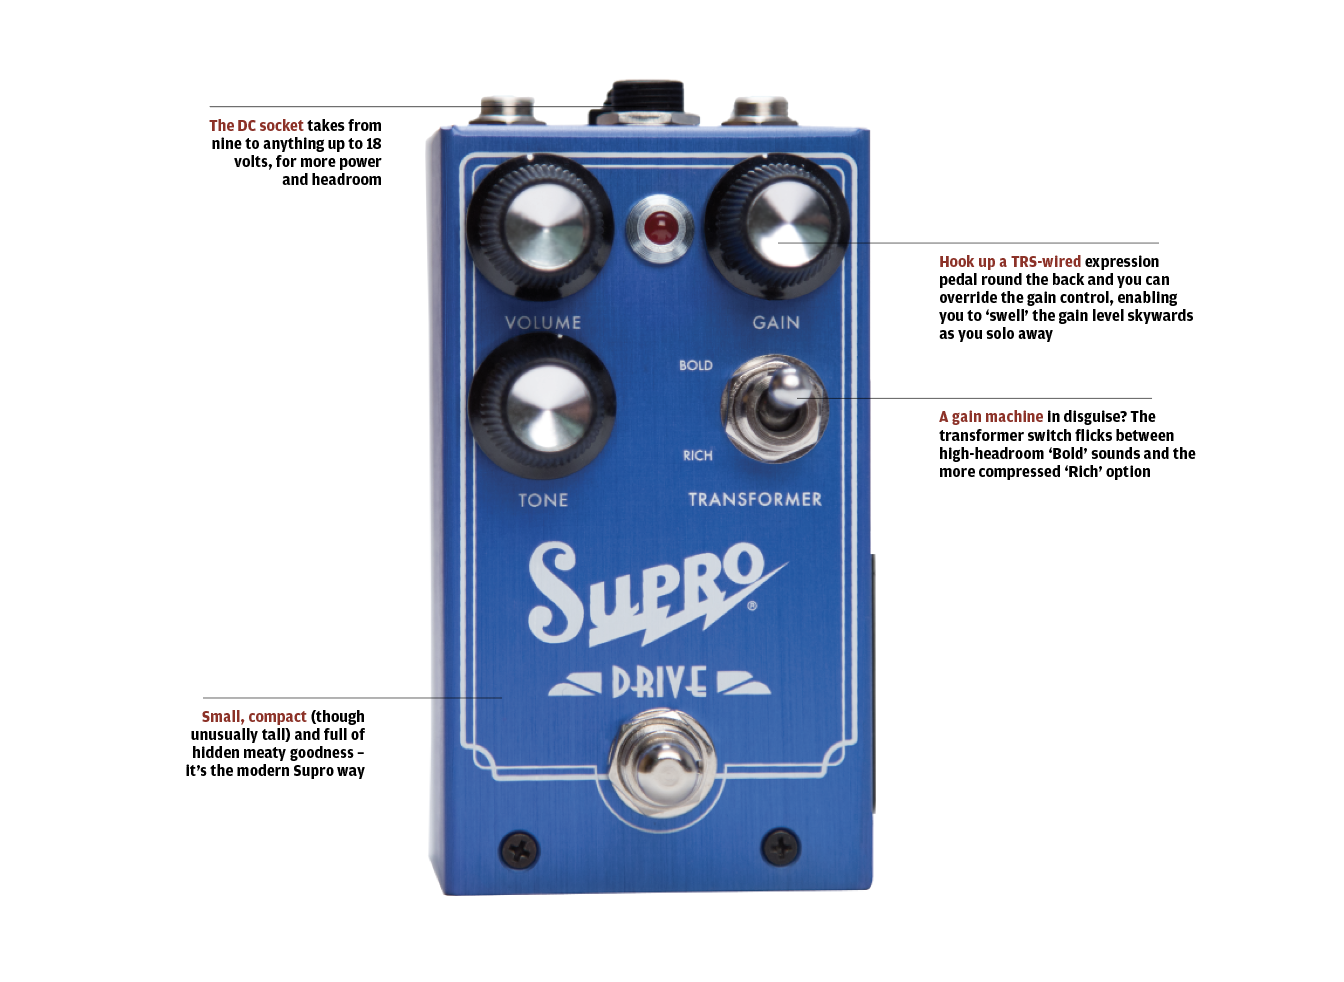 The 20 Best Fx Pedals In World Today Guitar Magazine Related Posts To Fuzz Box Schematics Central And Pcbs A Musical Old Time Supro Amp Aping Overdrive With An Output Transformer Intriguing Expression Pedal Option For Increasing Gain